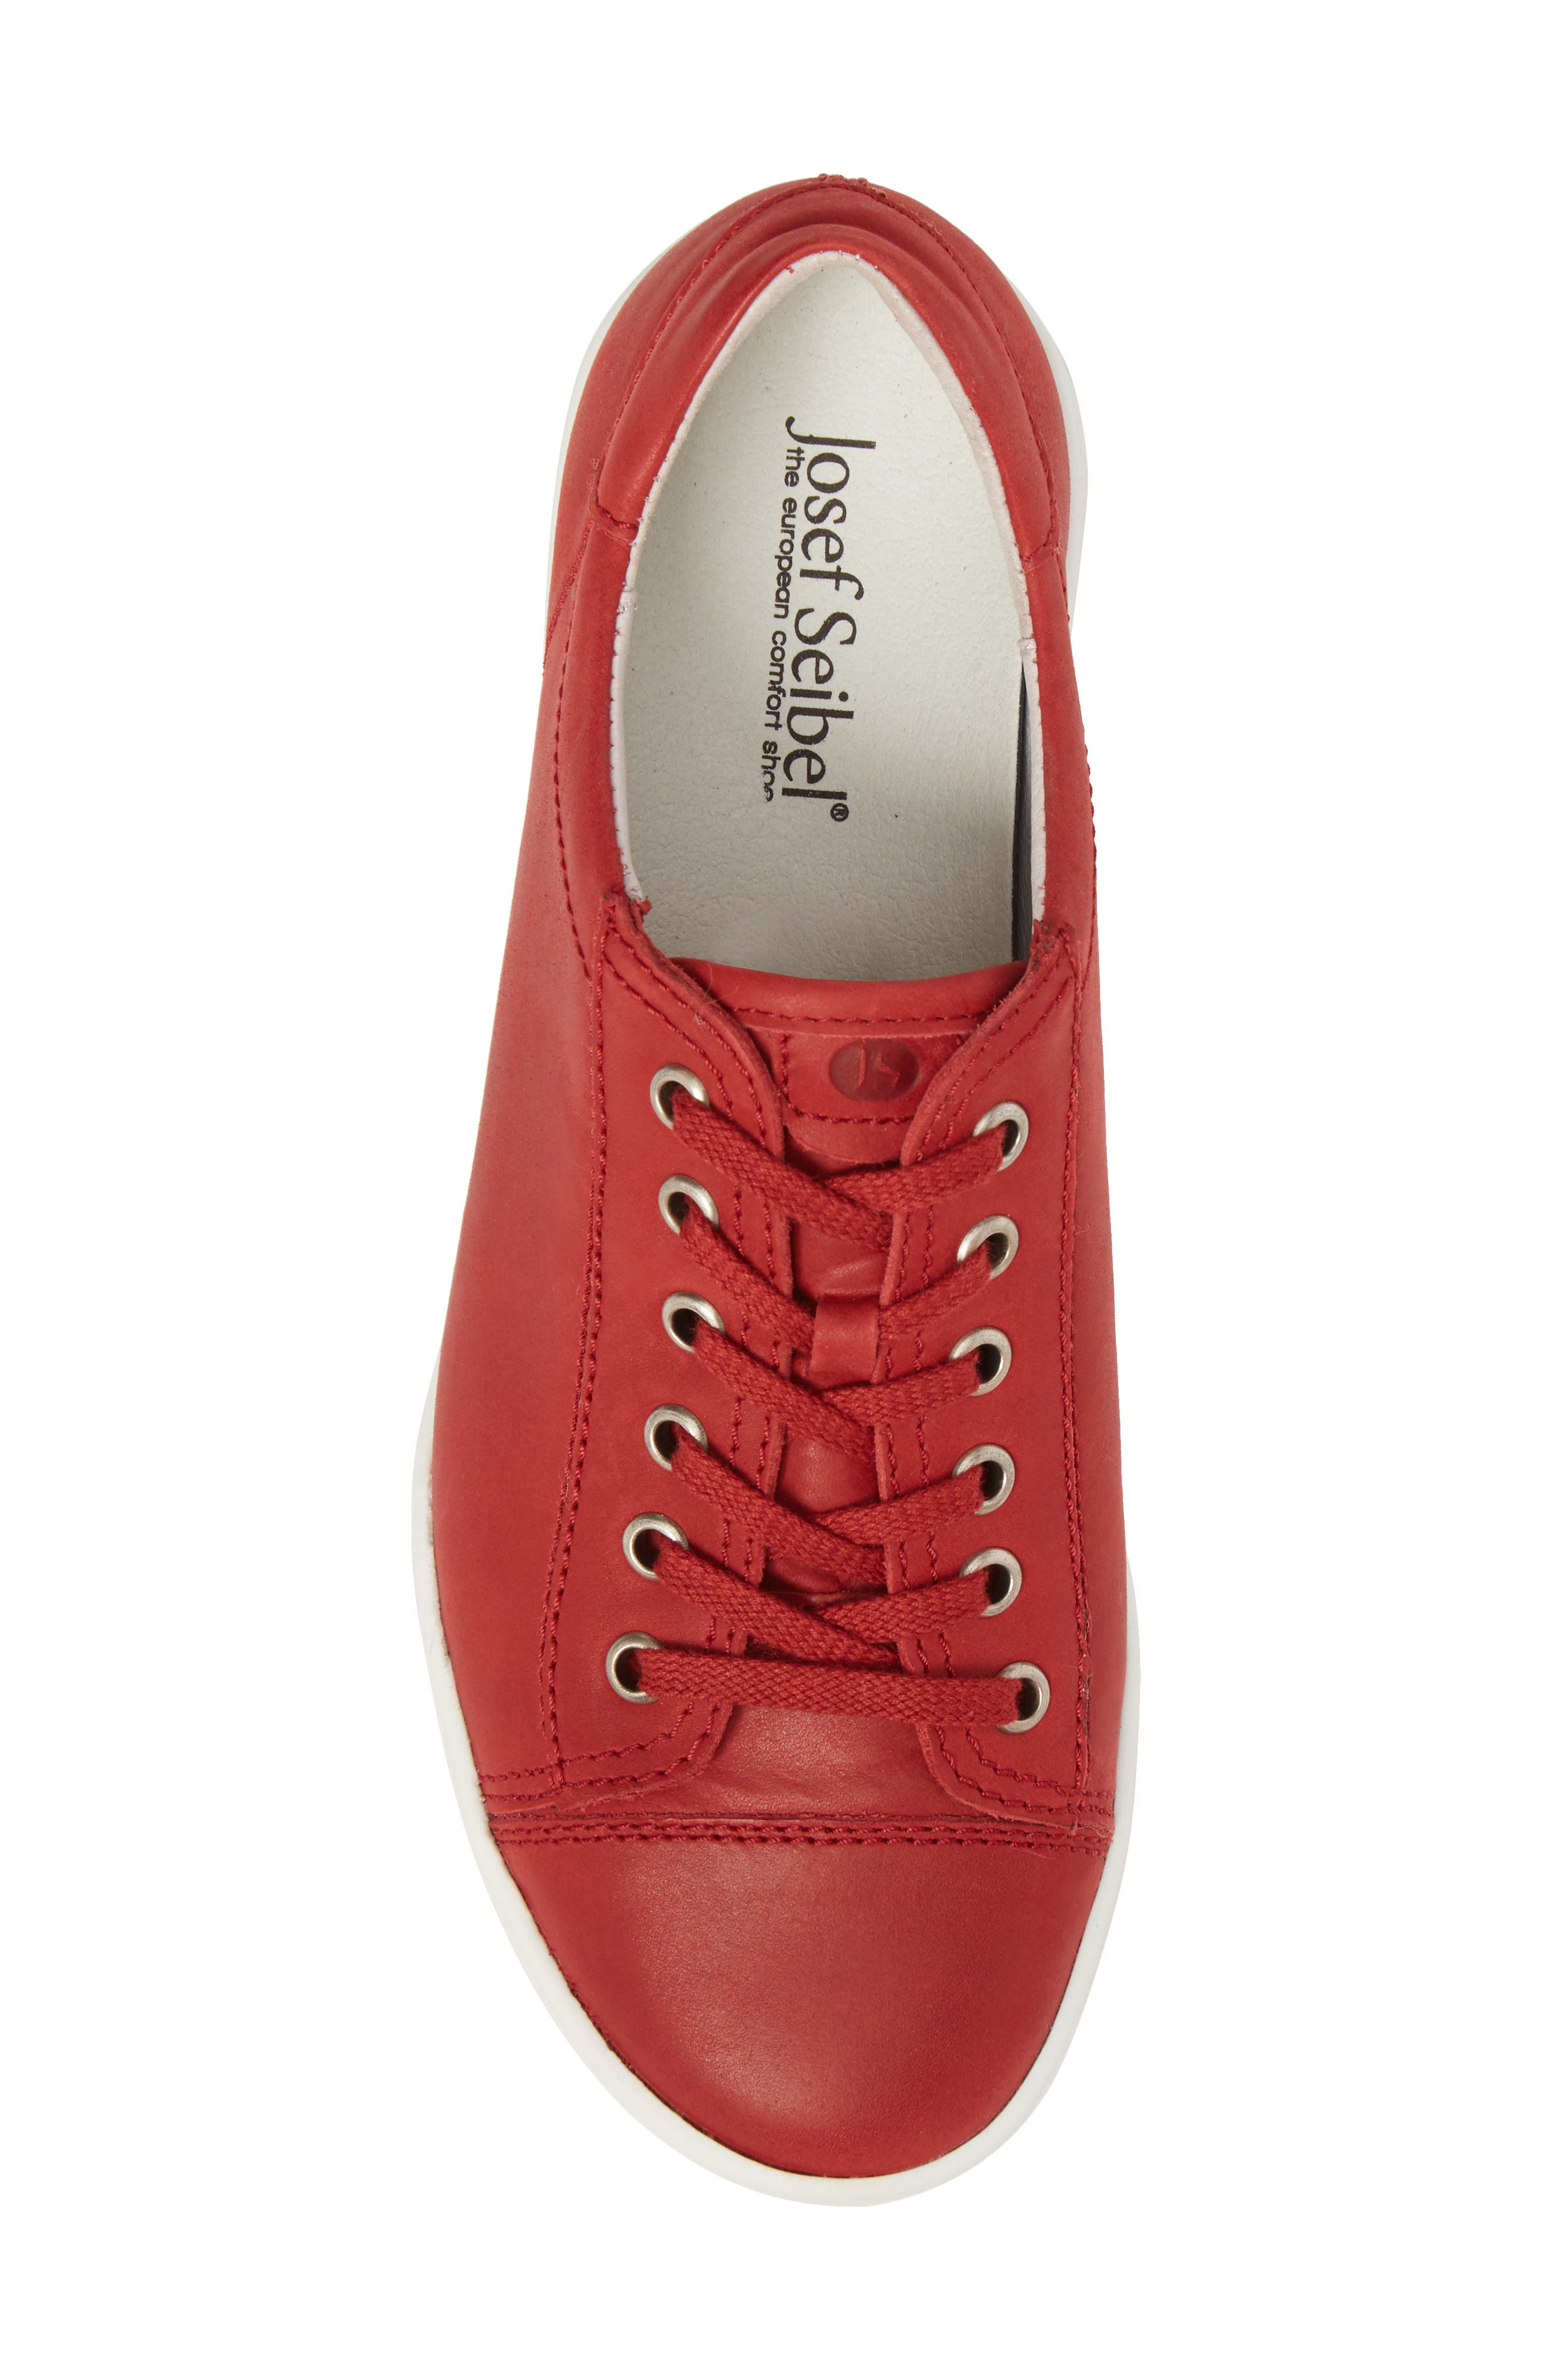 Sina 11 Sneaker,                             Alternate thumbnail 5, color,                             RED LEATHER 2